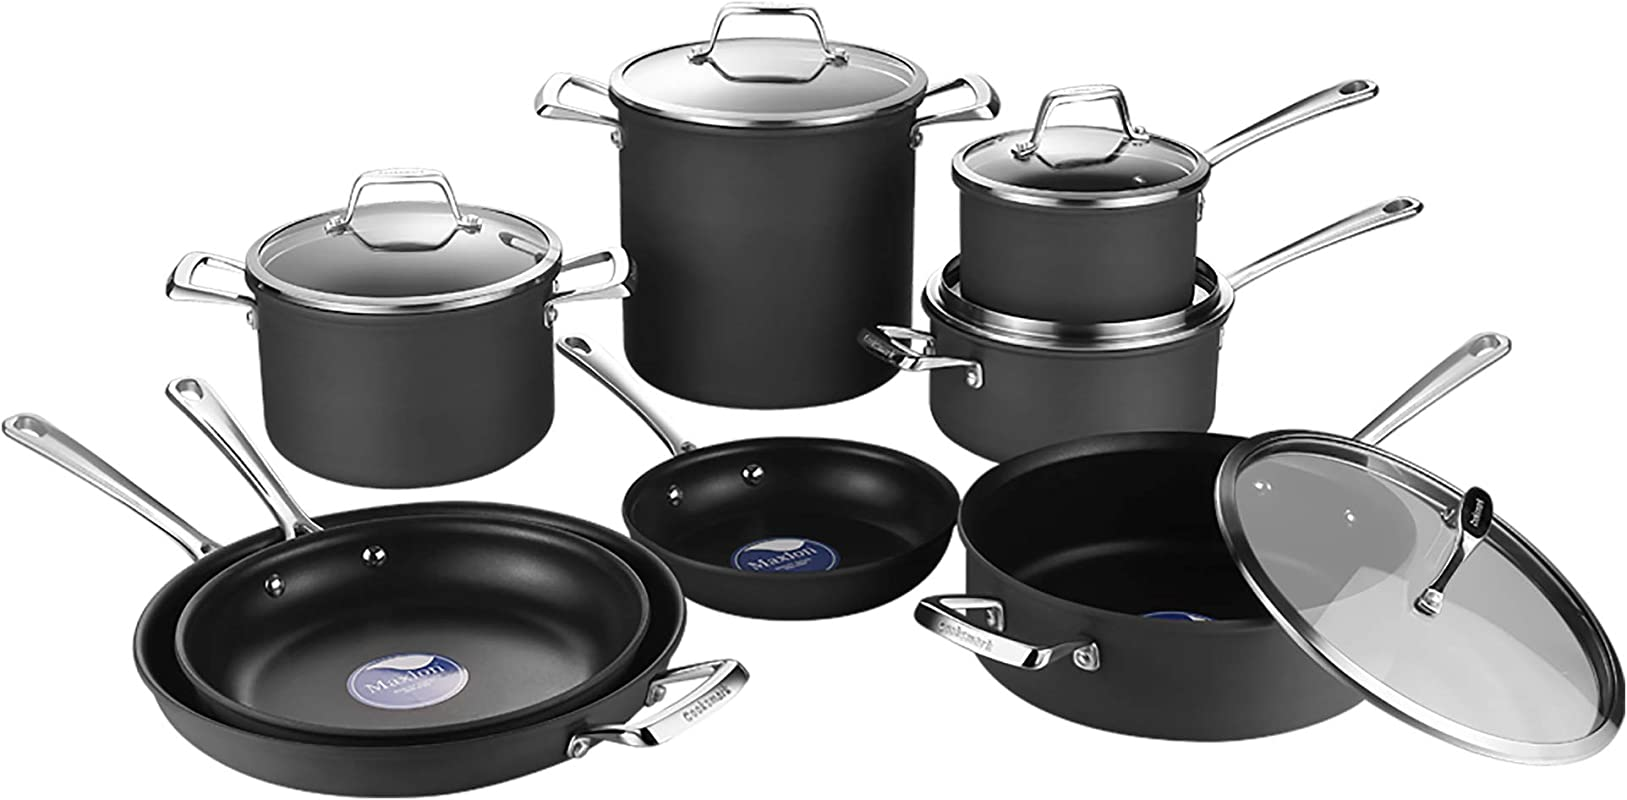 AMERICOOK Black 13 Piece Hard Anodized Pots And Pans Set Non Stick Ceramic Coating Aluminium Induction Cookware Set Pots And Pans With Glass Lids And Non Slip Stay Cool Stainless Steel Handles